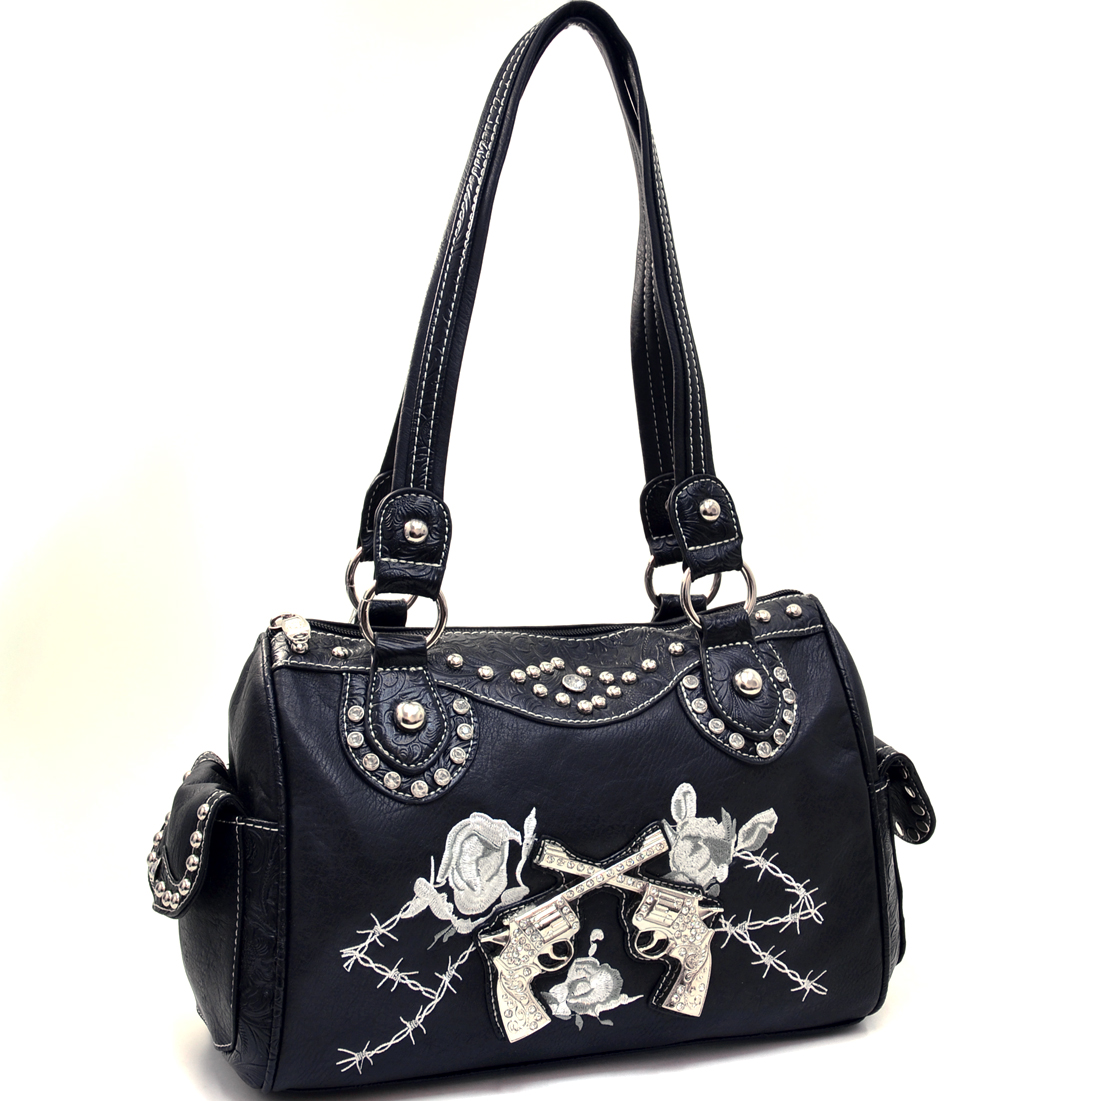 Western Rhinestone Six Shooter Barrel Shoulder Bag With Floral Trim